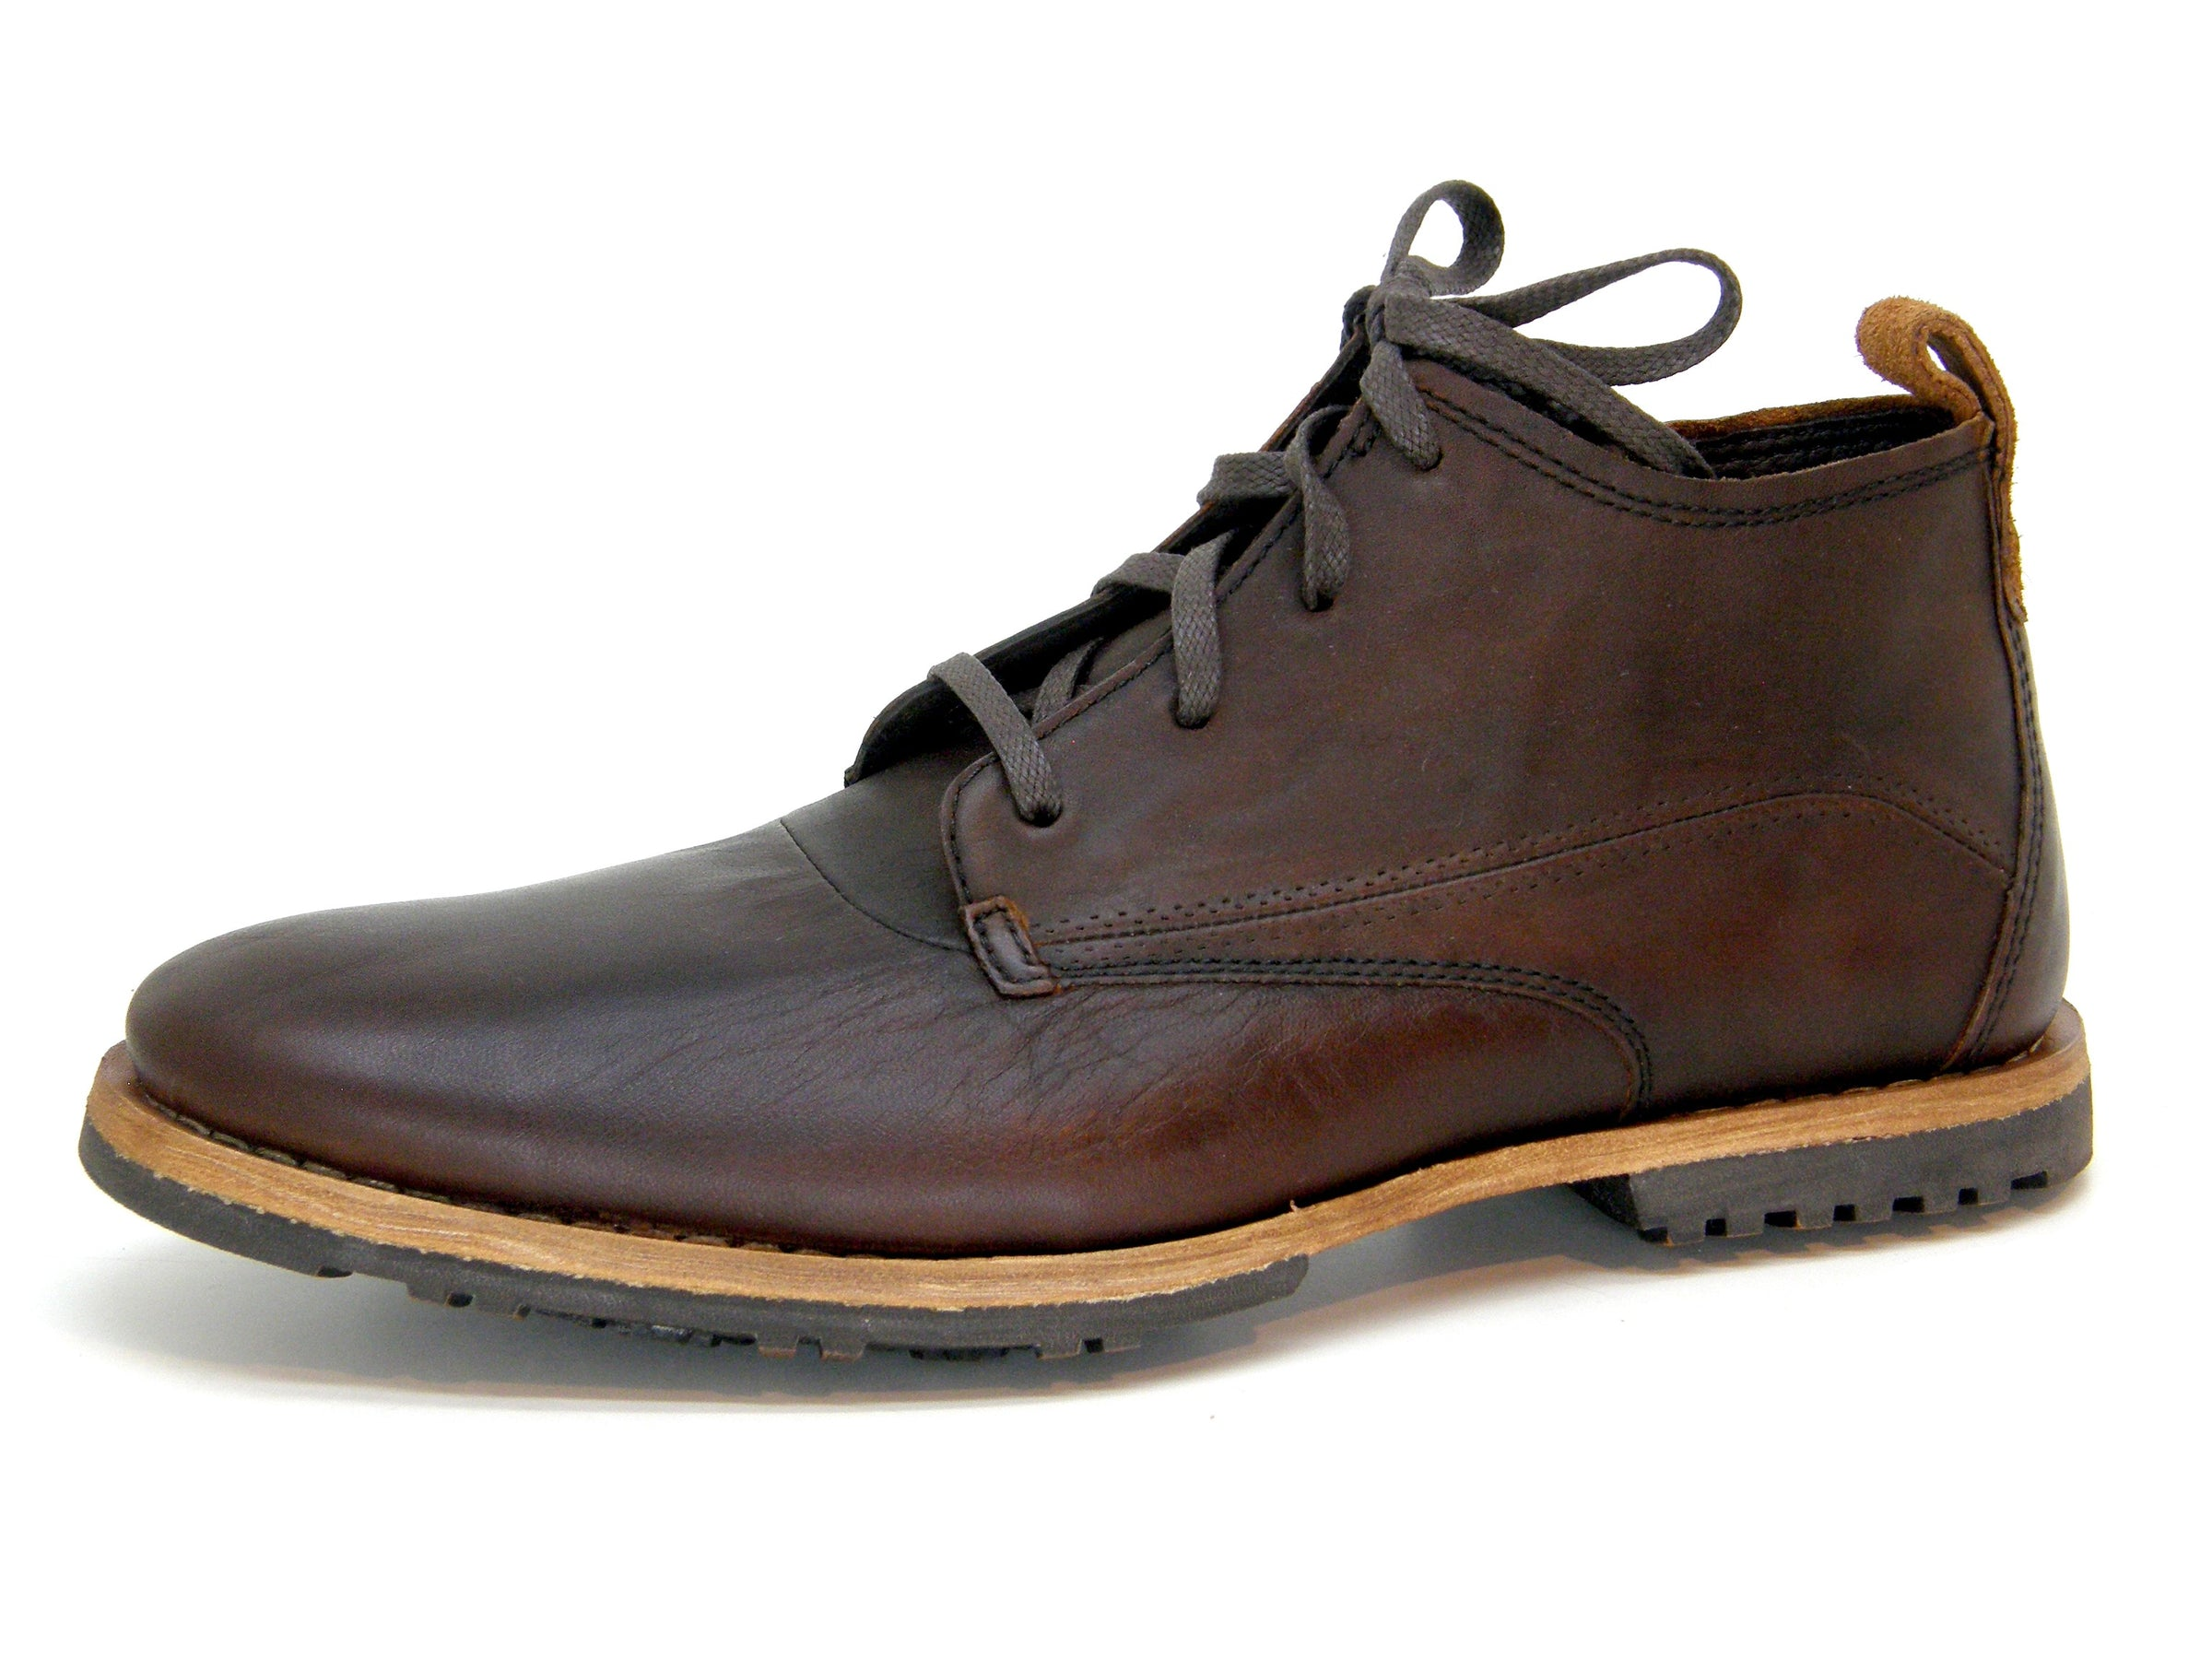 Timberland Boot Co. Men's Bardstown Chukka